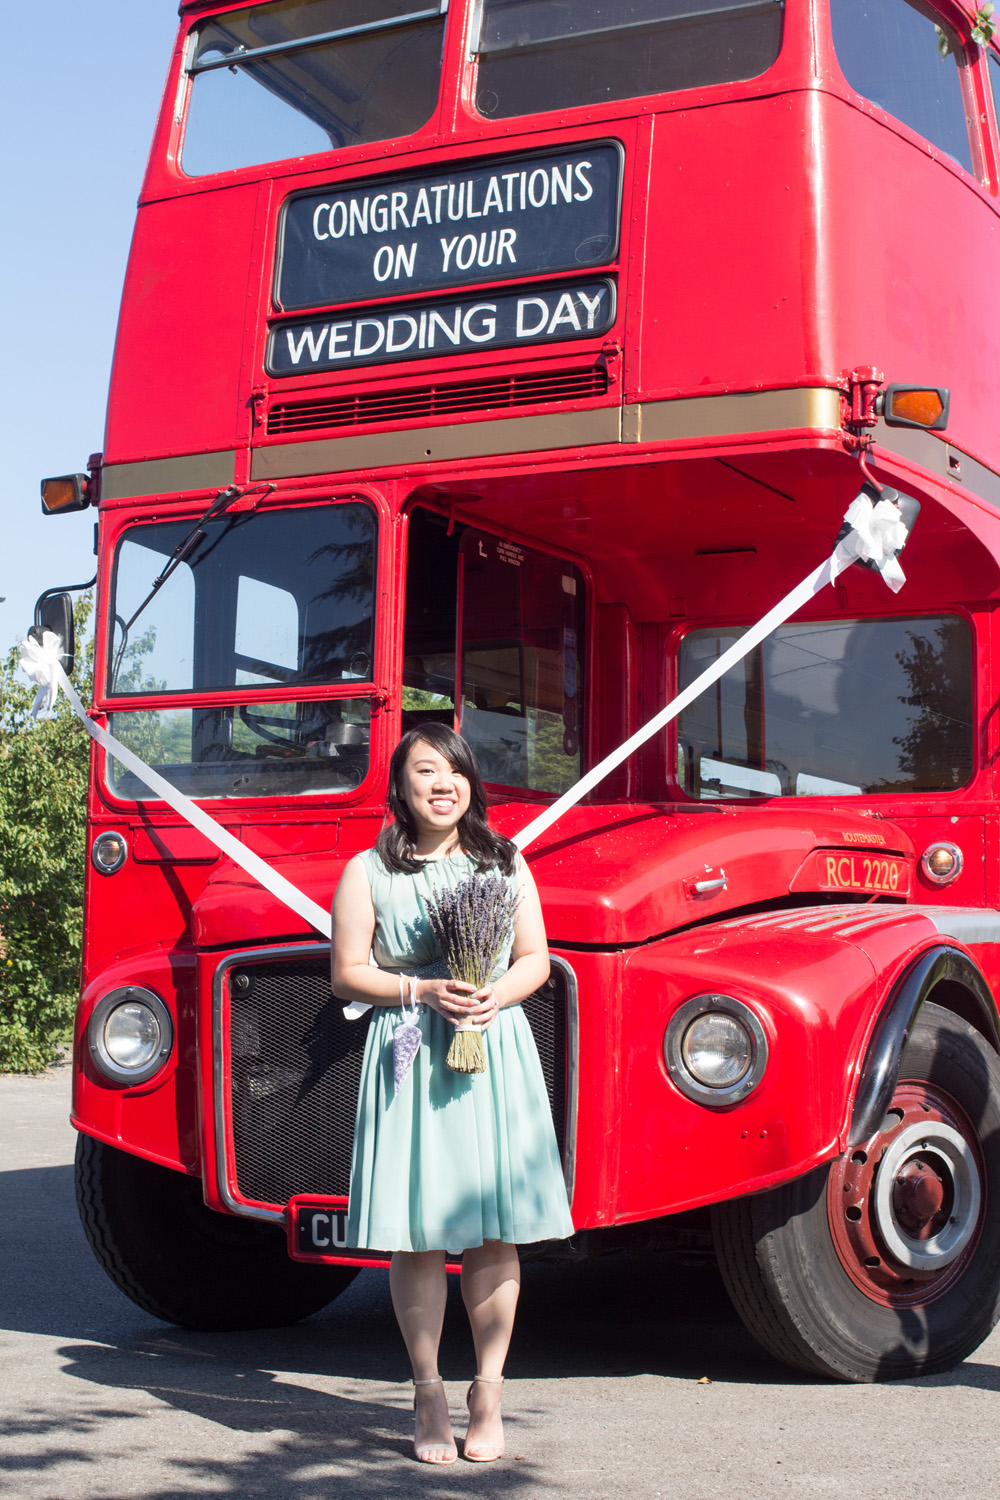 5 Bridesmaid chrissy and dan wedding route master wedding bus